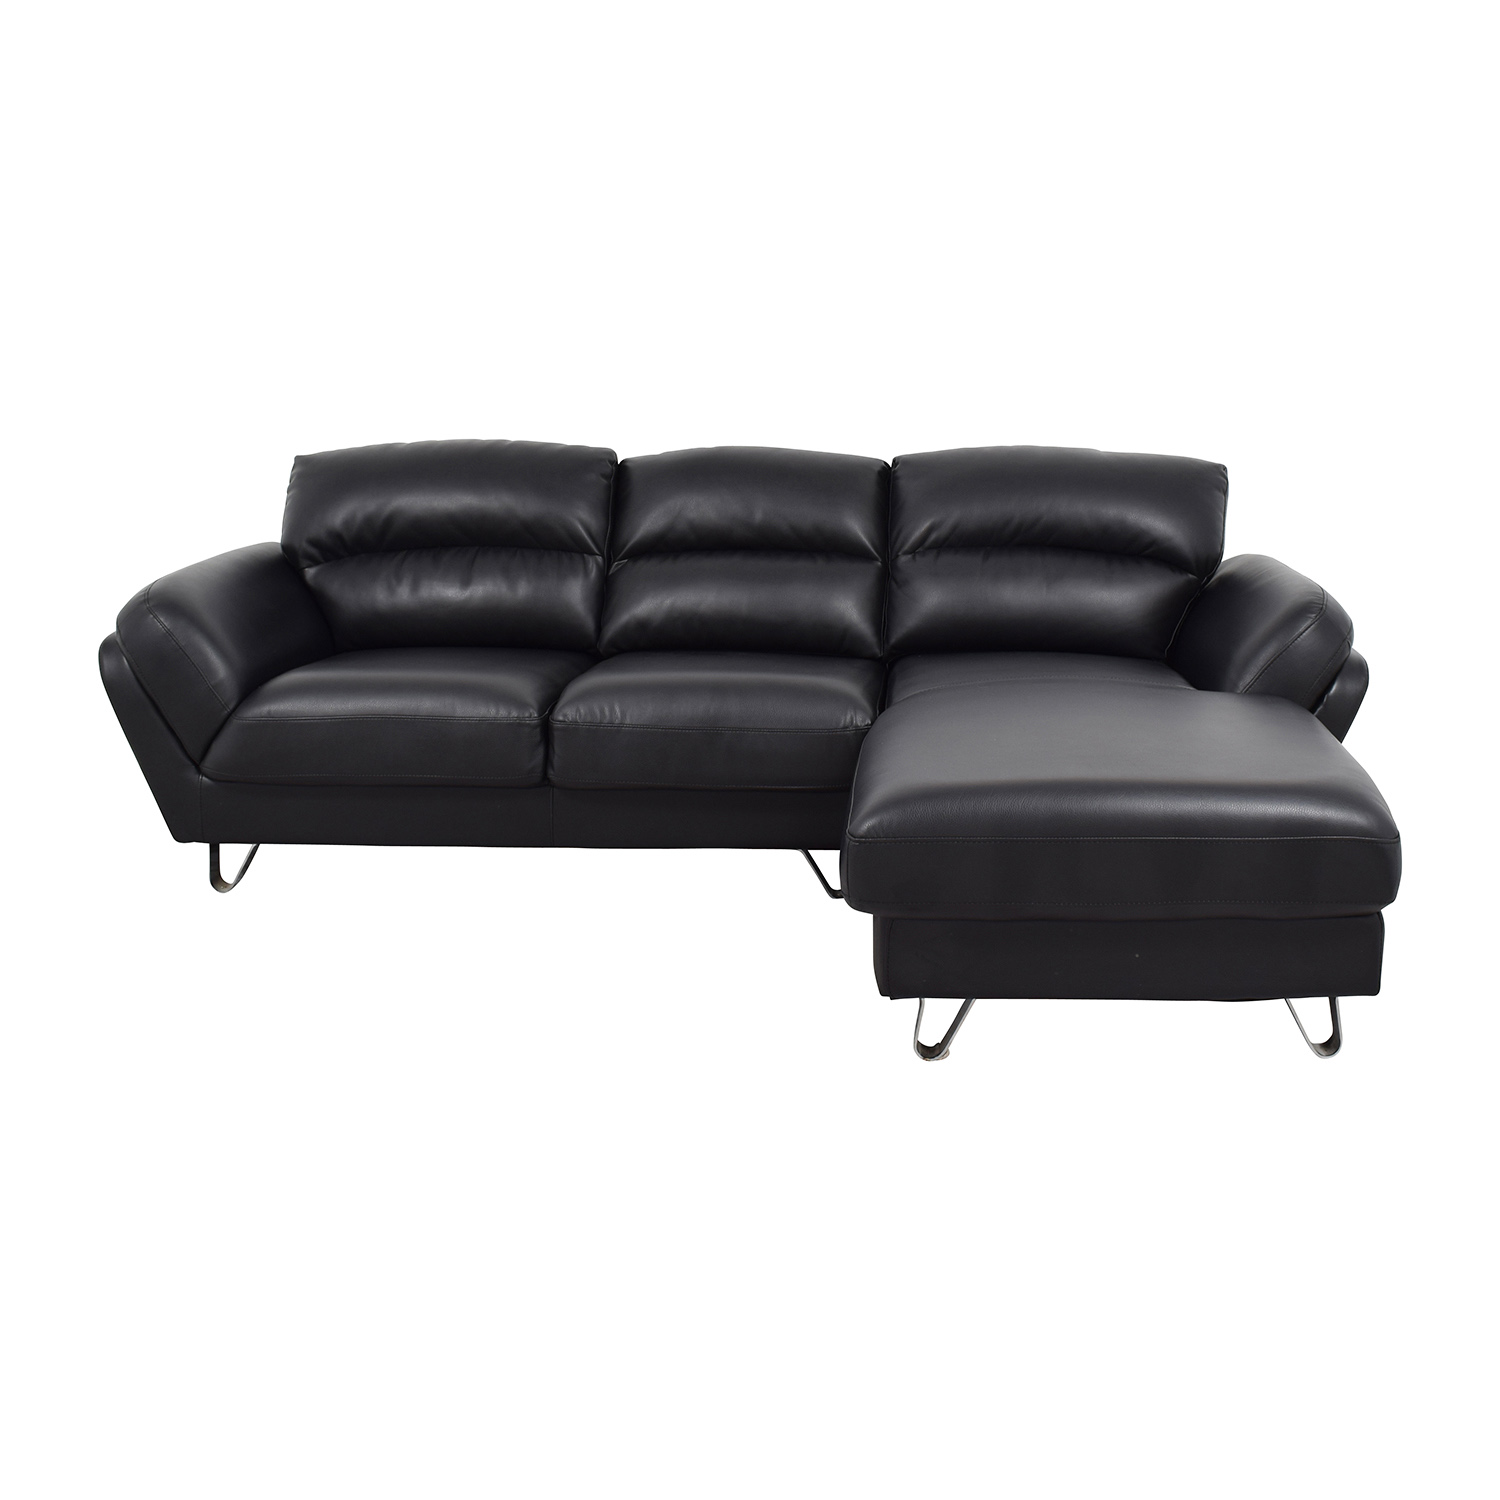 Contemporary Faux Leather Two-piece Sectional Sofa Sofas